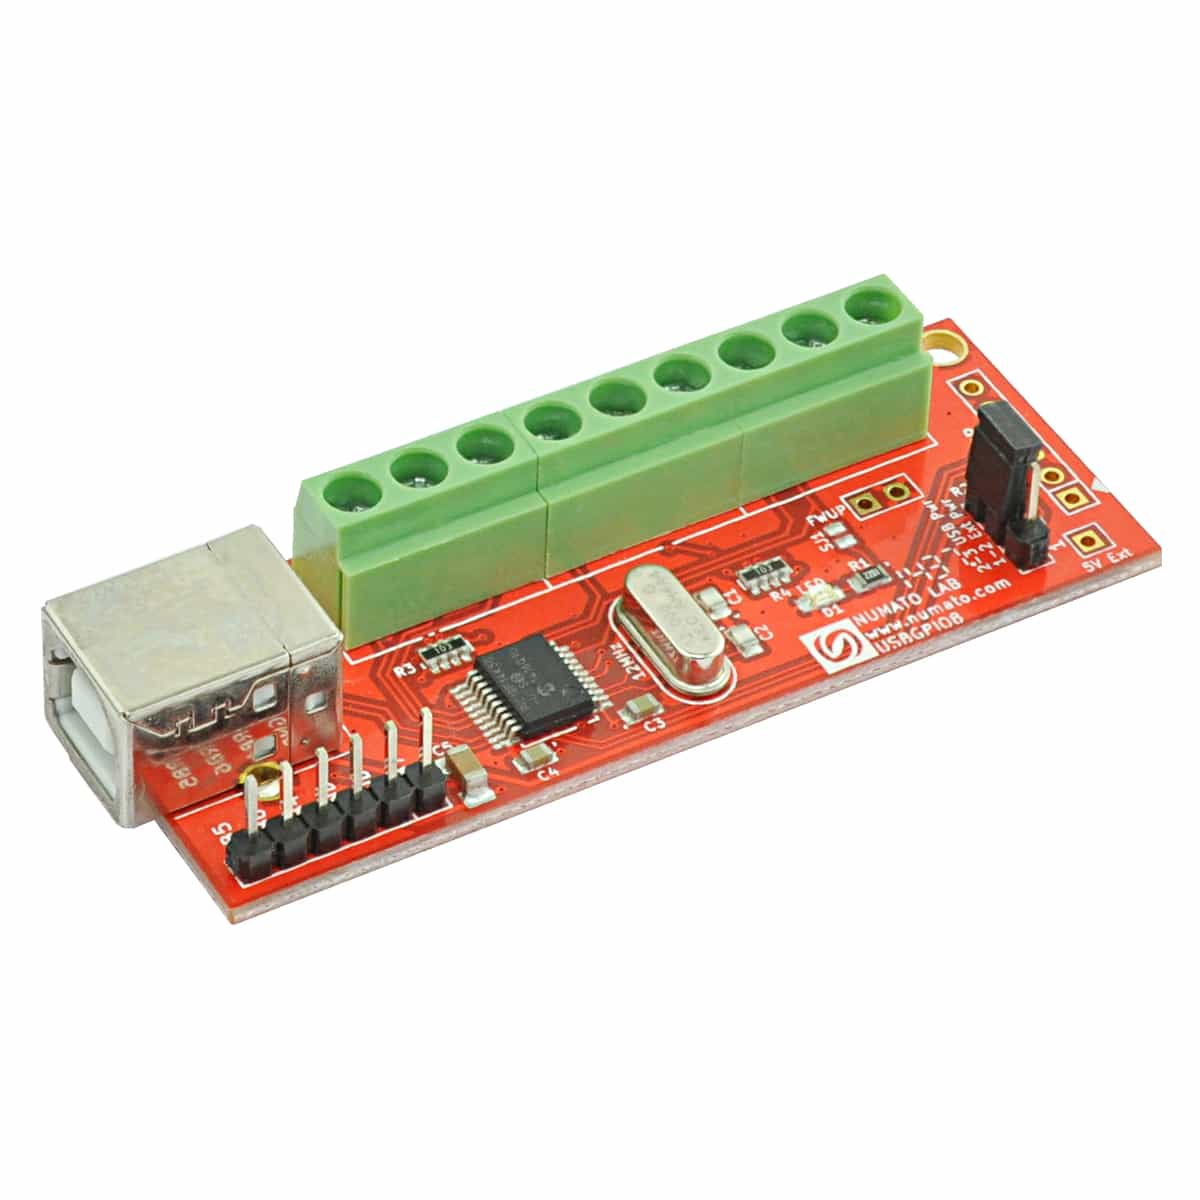 8 Channel Usb Gpio Module With Analog Inputs Numato Lab Rca To Converter Schematic